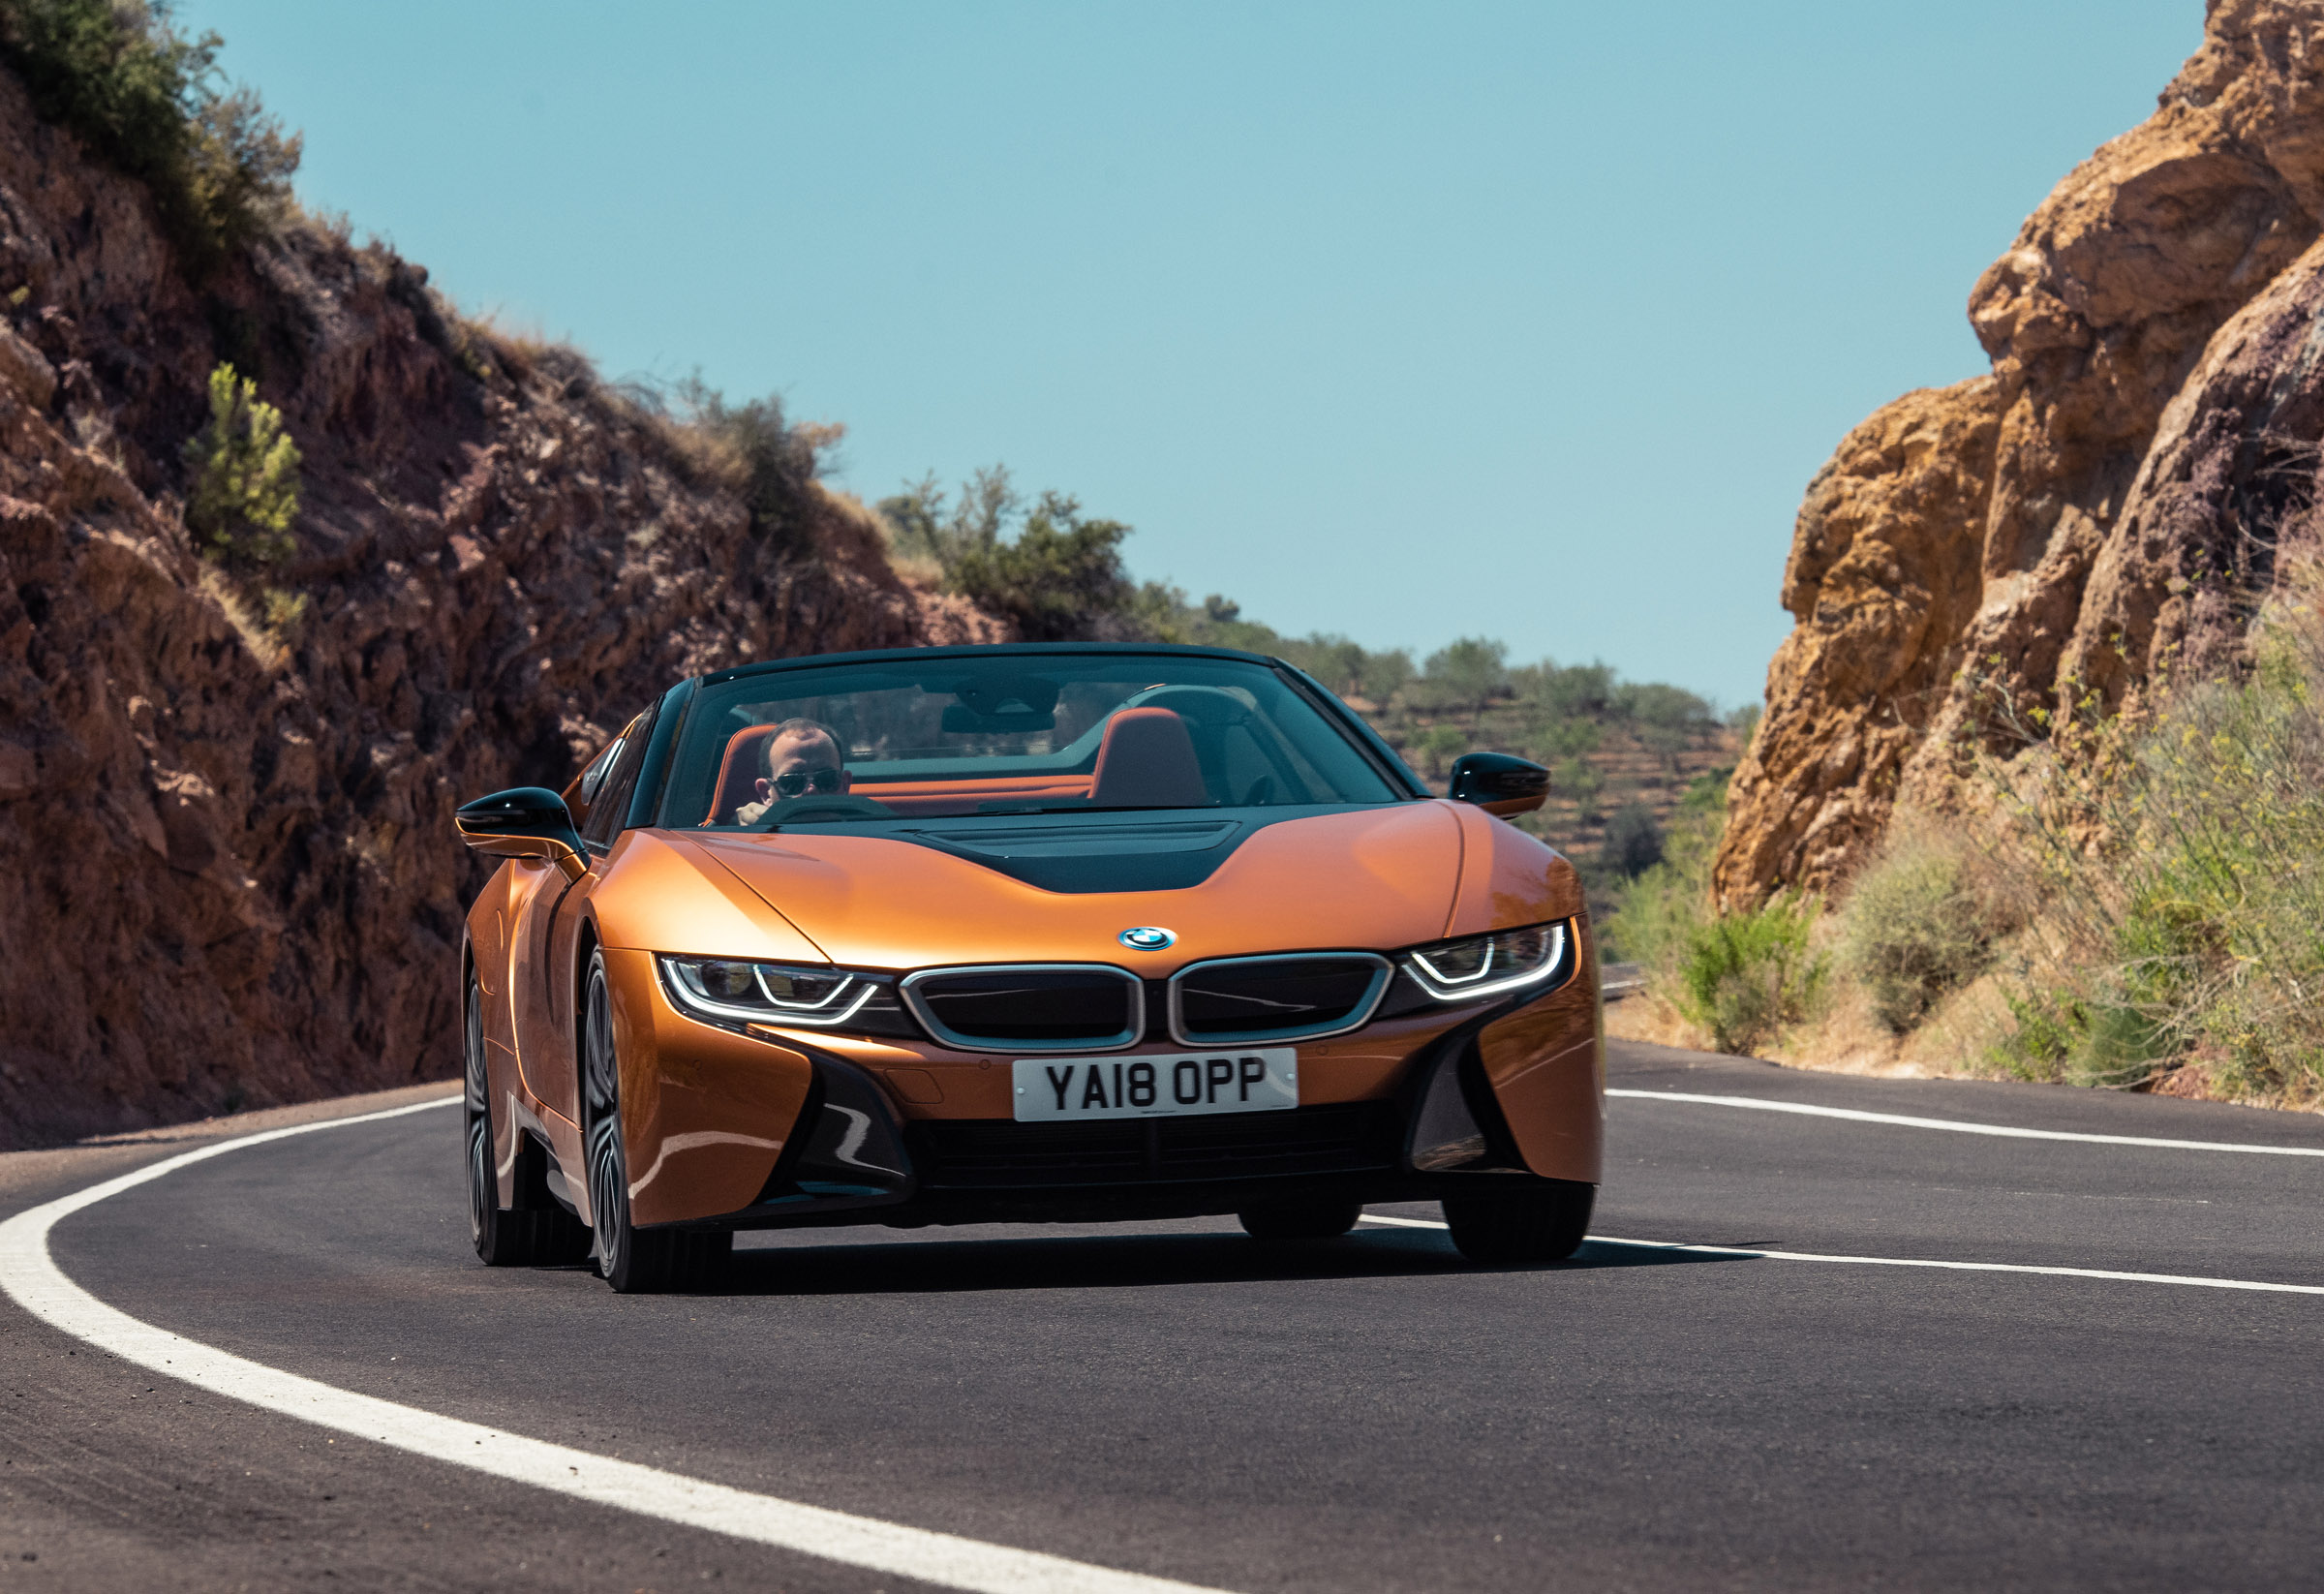 Bmw I8 Roadster Review New Open Top Hybrid Sports Car Evo